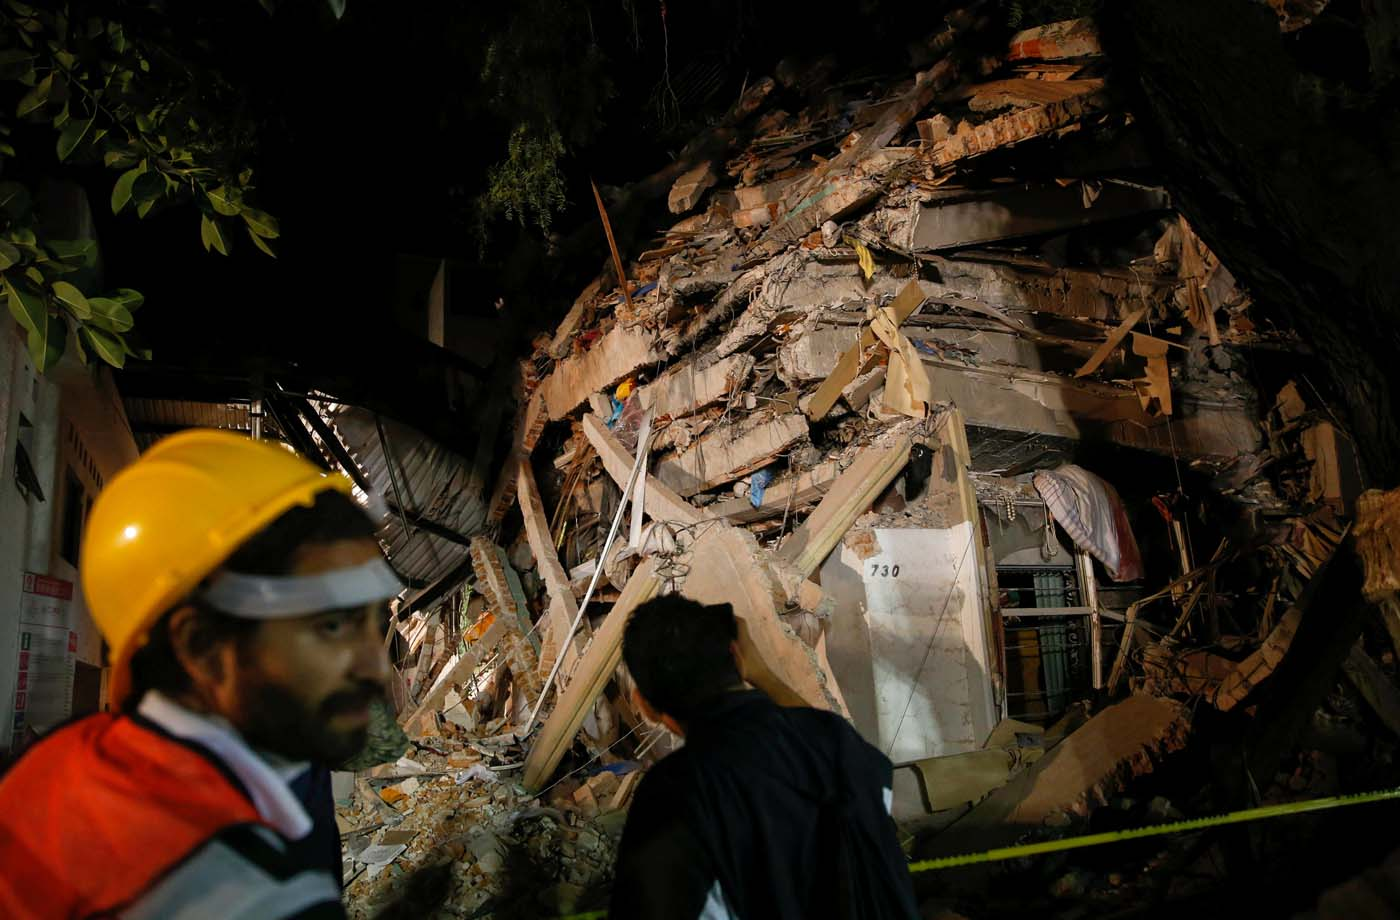 A rescuer walks past at a collapsed building after an earthquake in Mexico City, Mexico September 20, 2017. REUTERS/Henry Romero